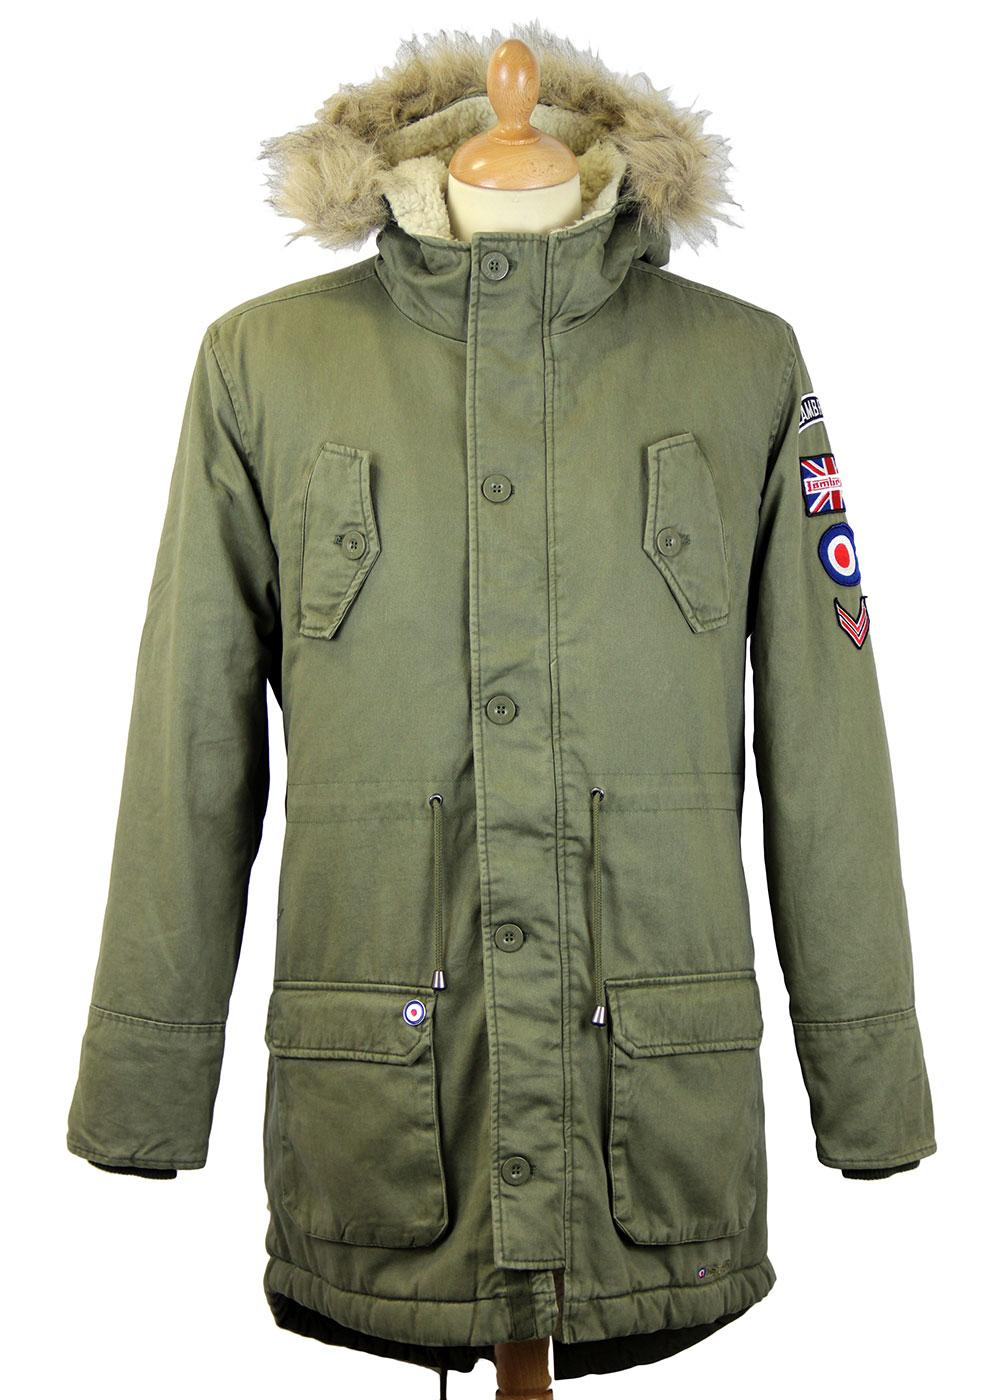 LAMBRETTA Retro 60s Mod Fishtail Parka Jacket with Patches